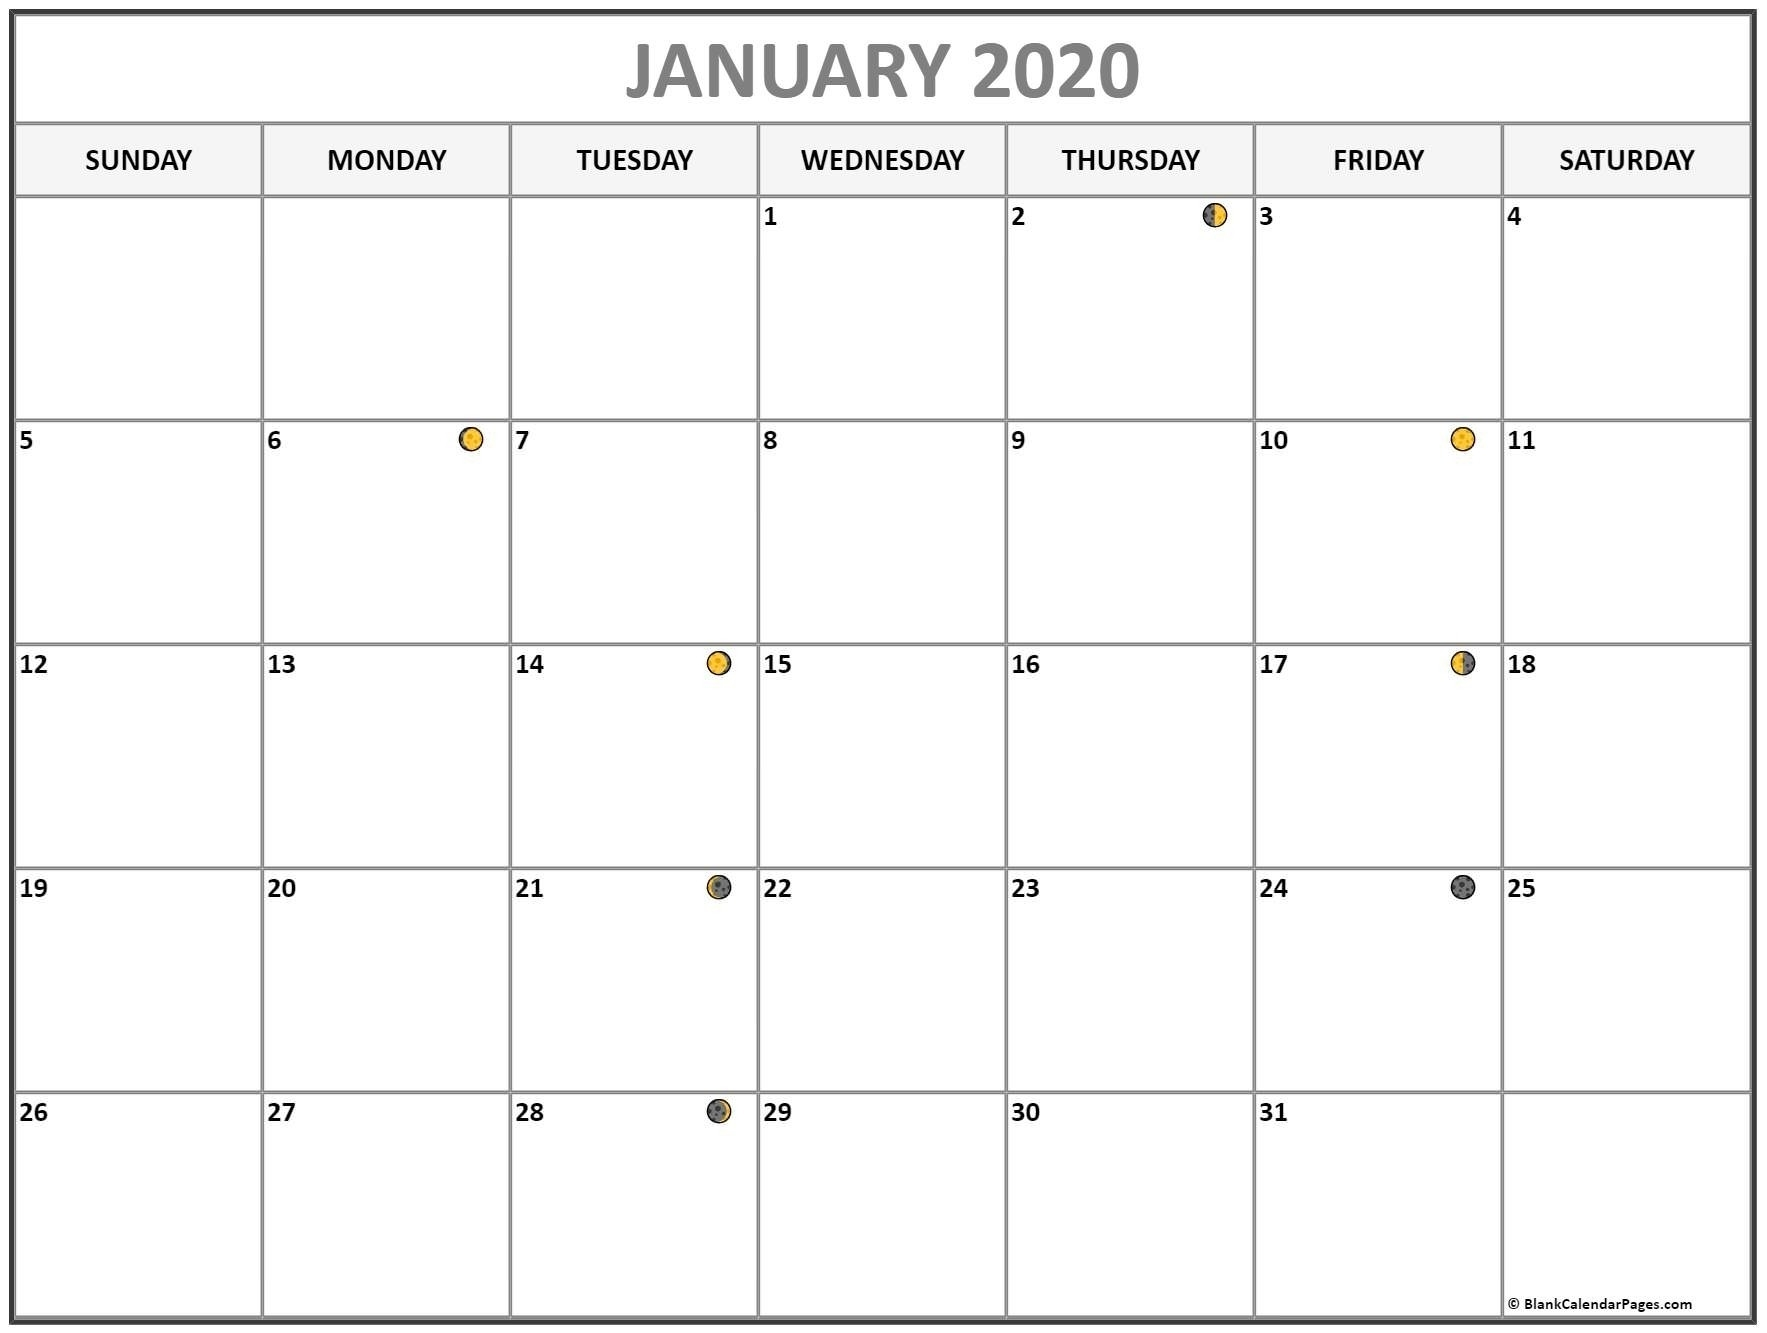 January 2020 Lunar Calendar | Moon Phase Calendar In Well-January 2020 Lunar Calendar